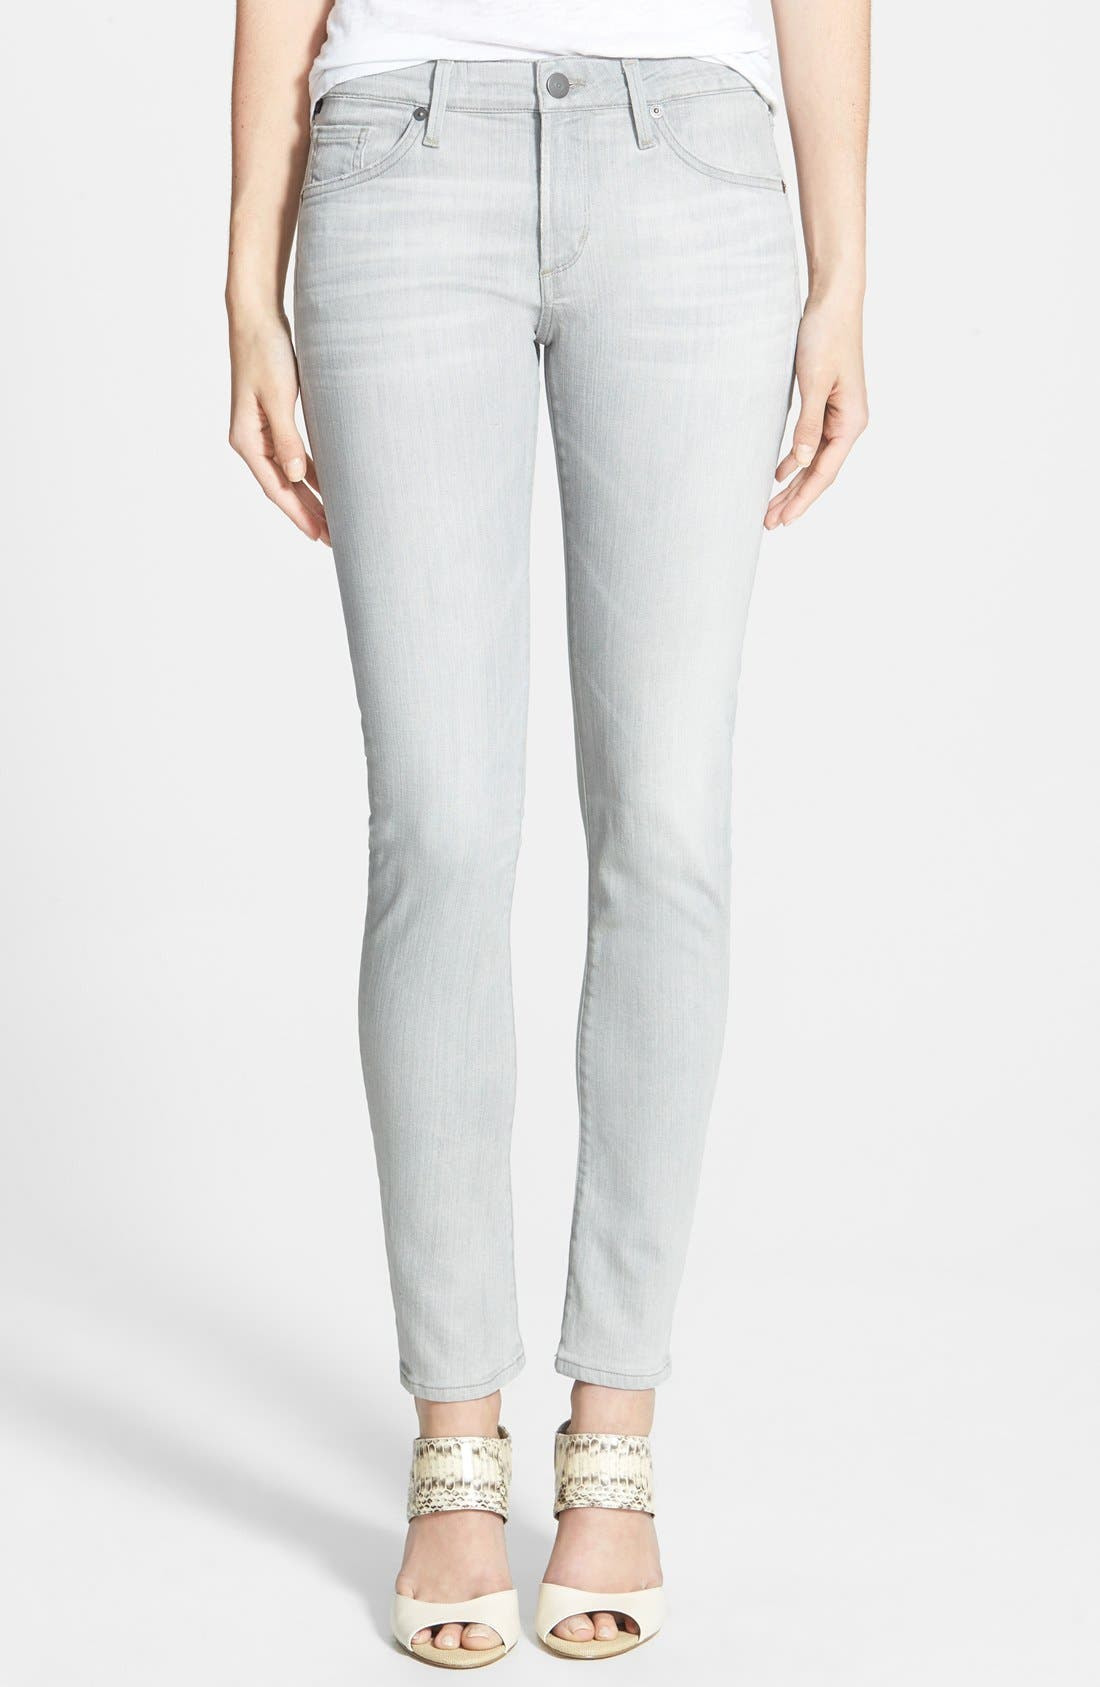 'Arielle' Skinny Jeans,                             Main thumbnail 1, color,                             020